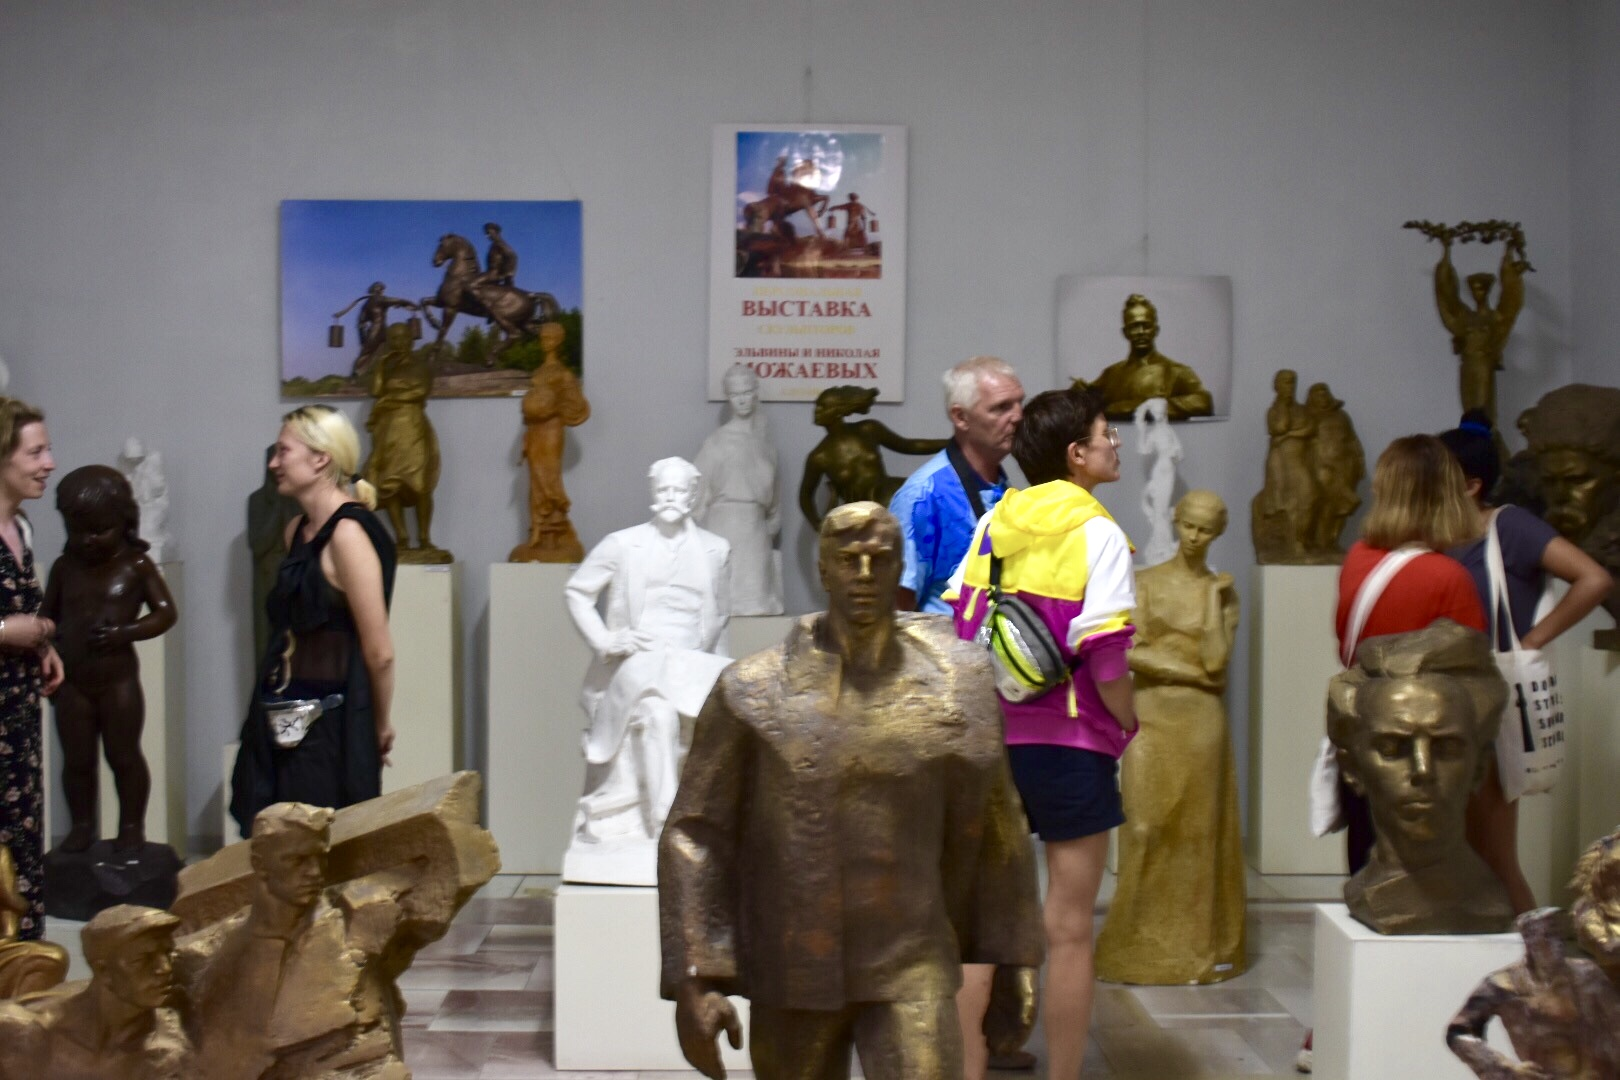 Participants and others reflect upon the phenomenon of Soviet sculpture in the context of debates on Decommunization of public spaces, Lysychansk Regional Museum